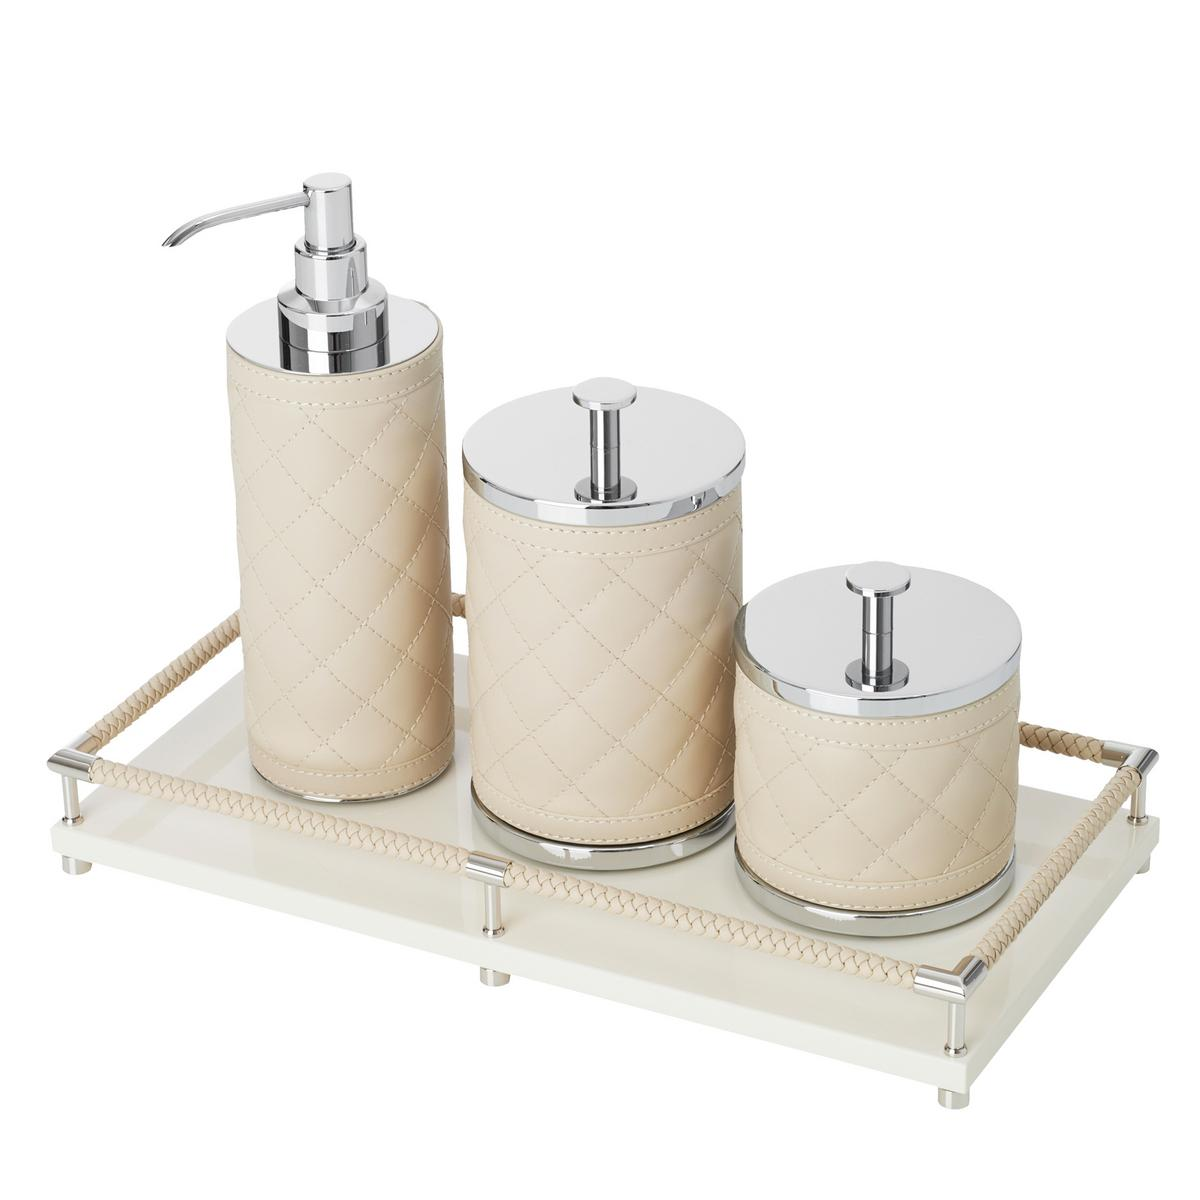 Riviere vanity bathroom accessories ivory for Bathroom vanity accessories